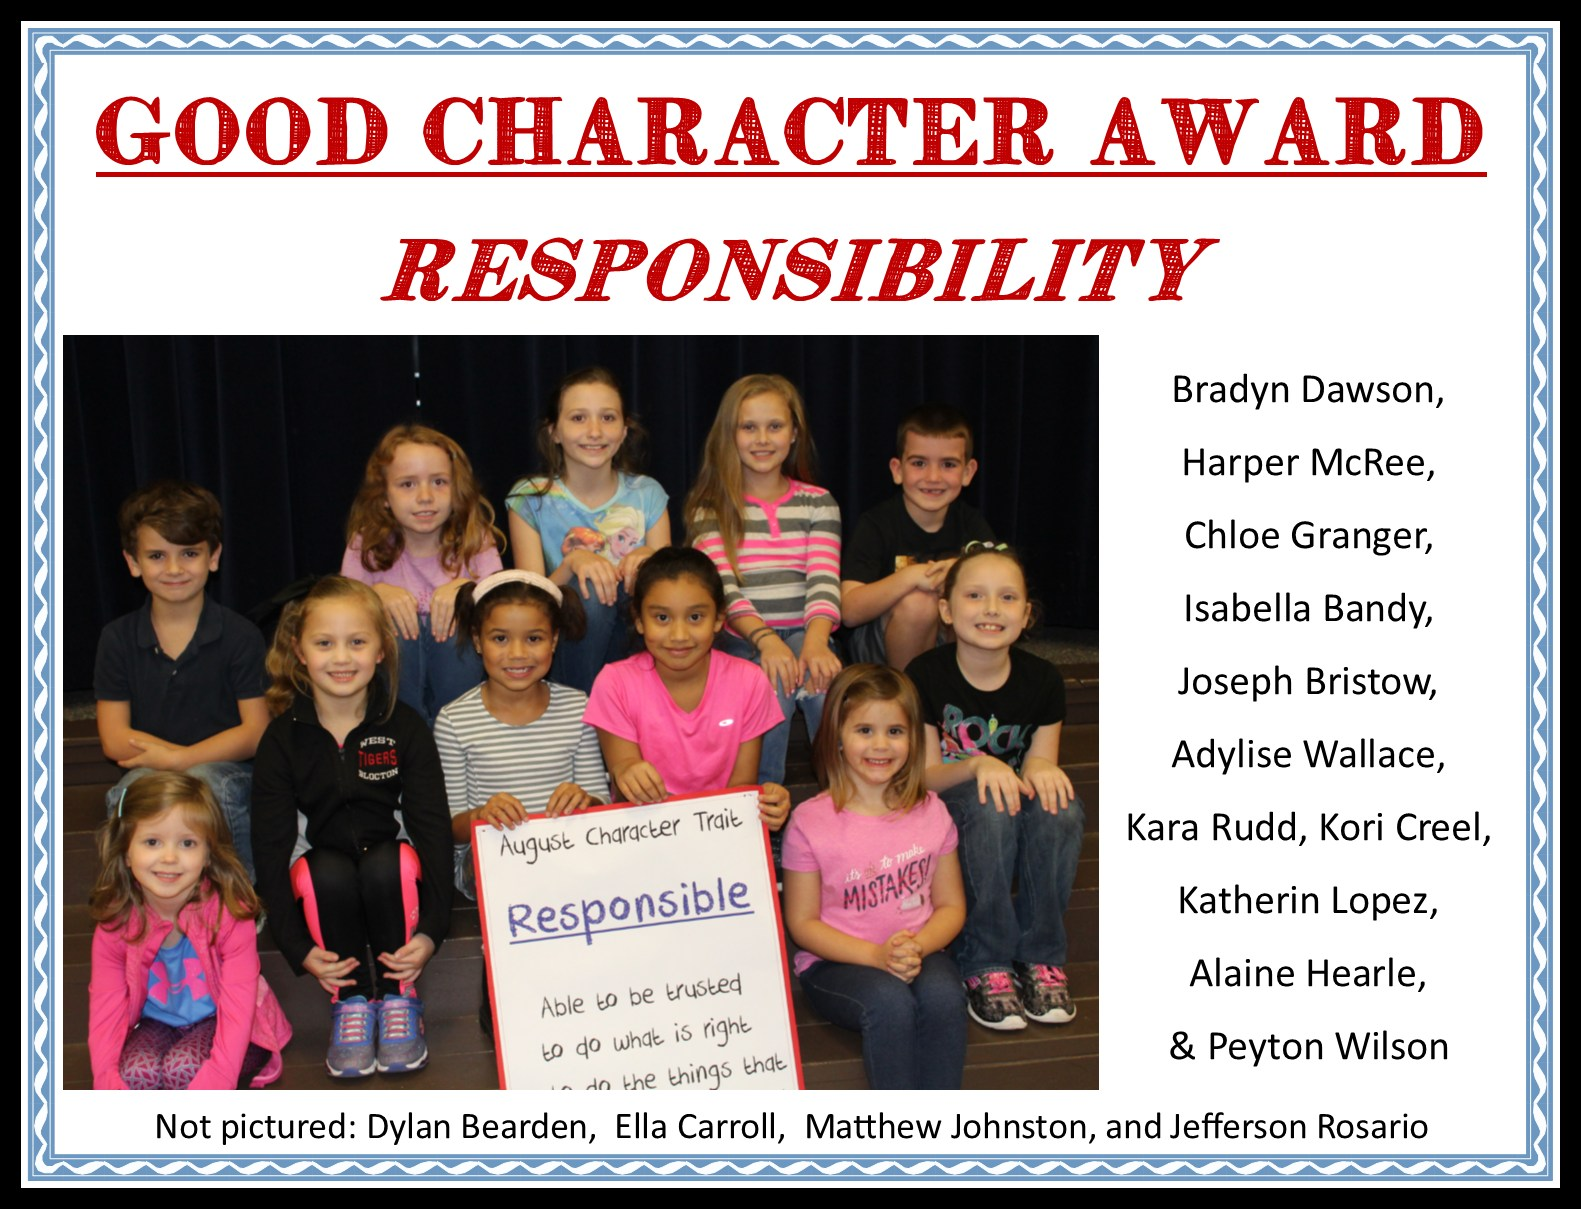 Students pictured who received good character award for being responsible